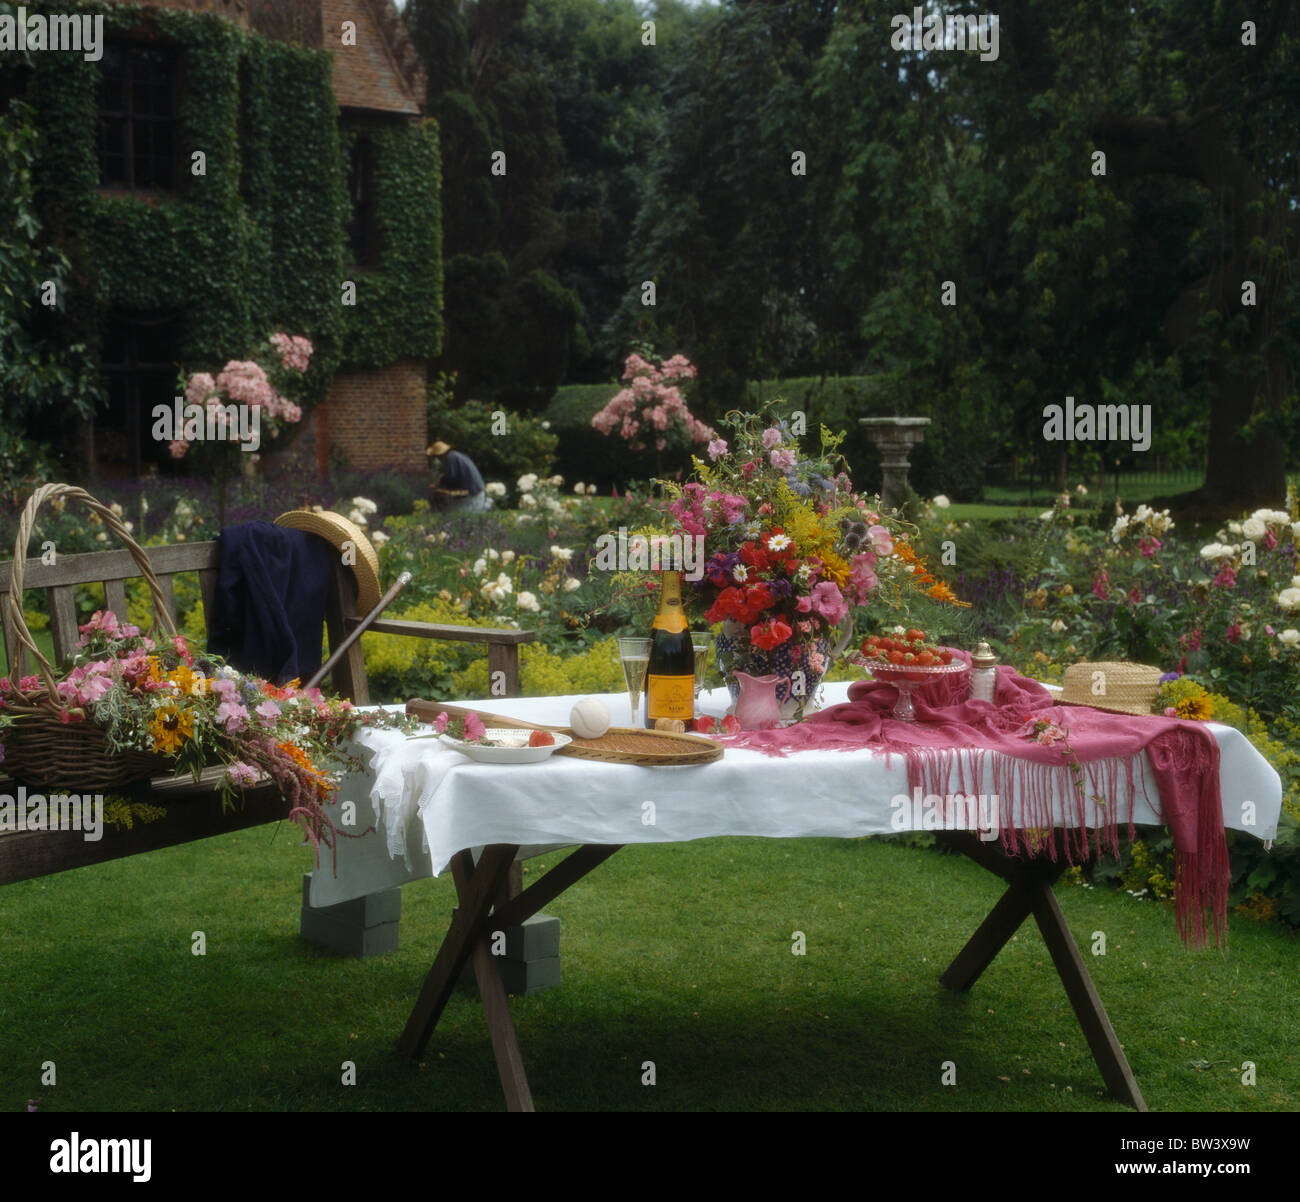 country garden in summer with table on lawn set for lunch with white